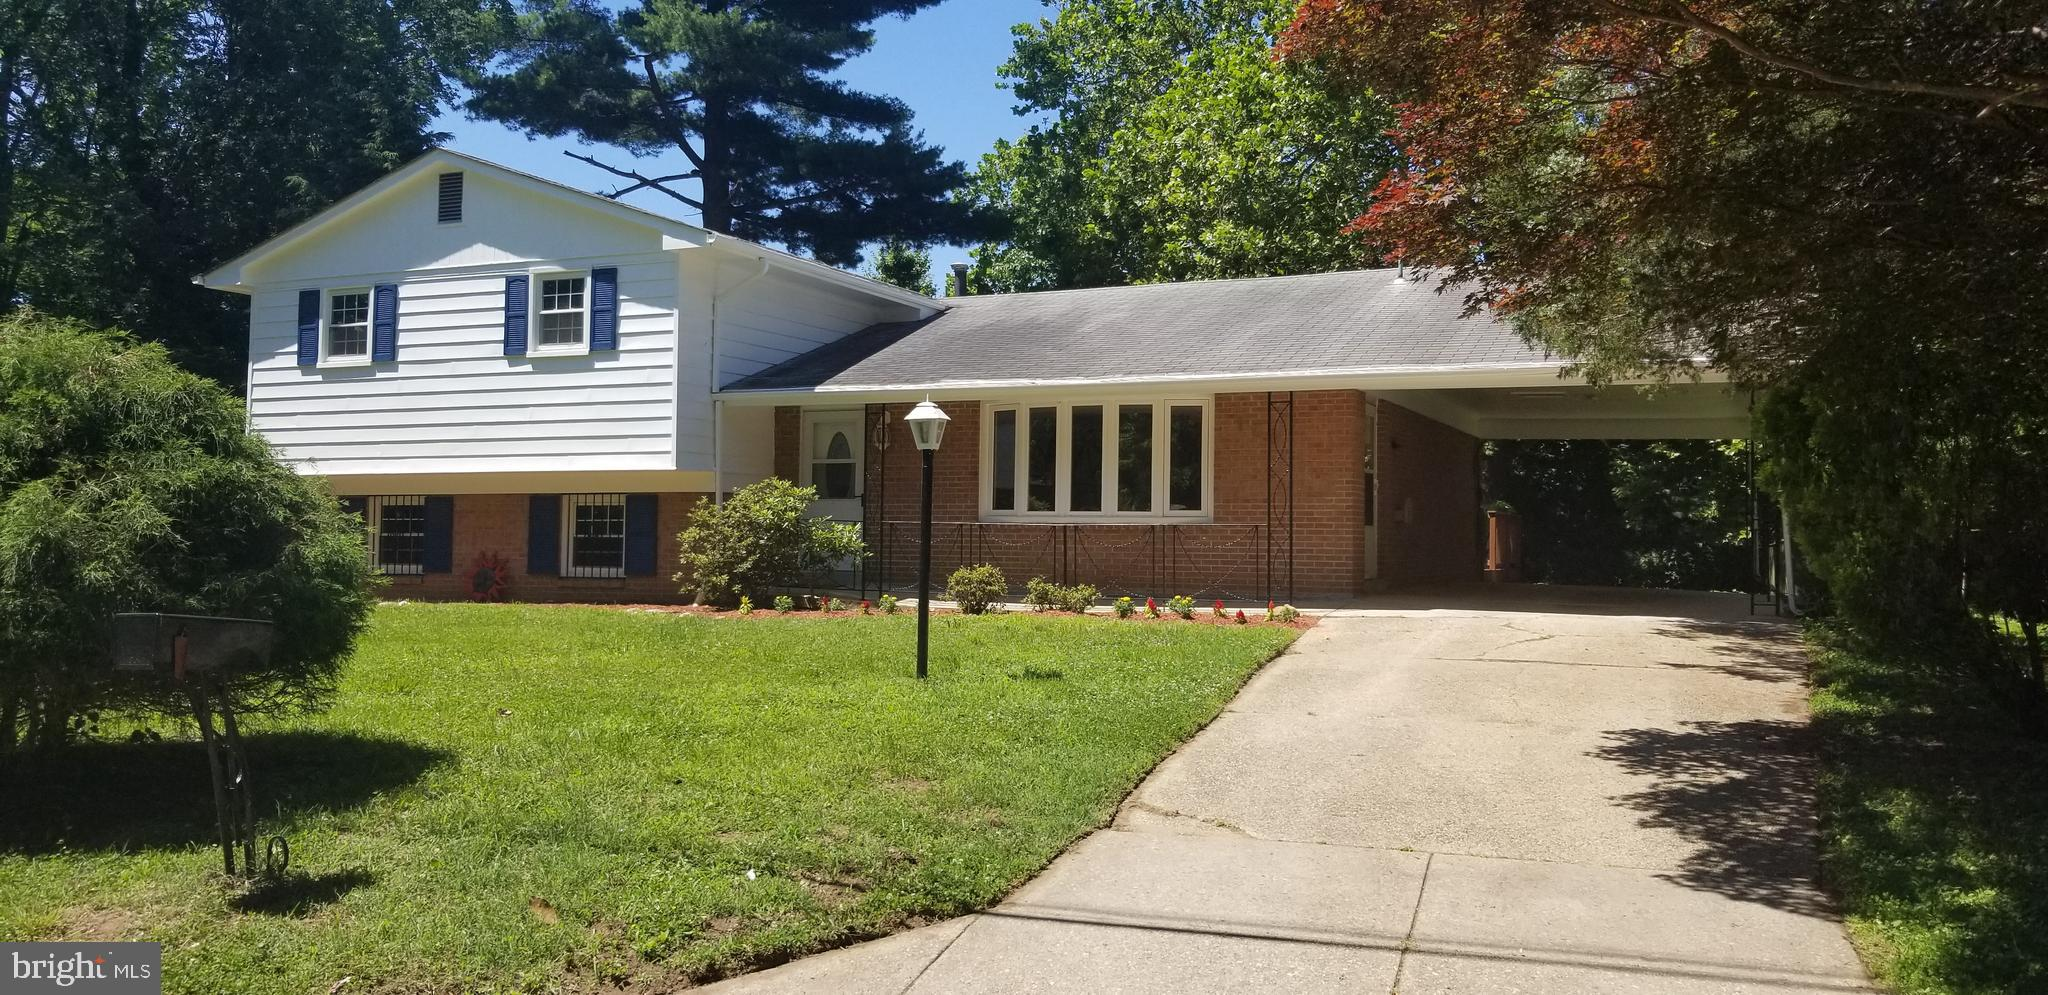 COME ENJOY SPACE FOR THE WHOLE FAMILY! UPDATED BI-LEVEL HOME IN SOUGHT AFTER NORTH POTOMAC VISTA NEI